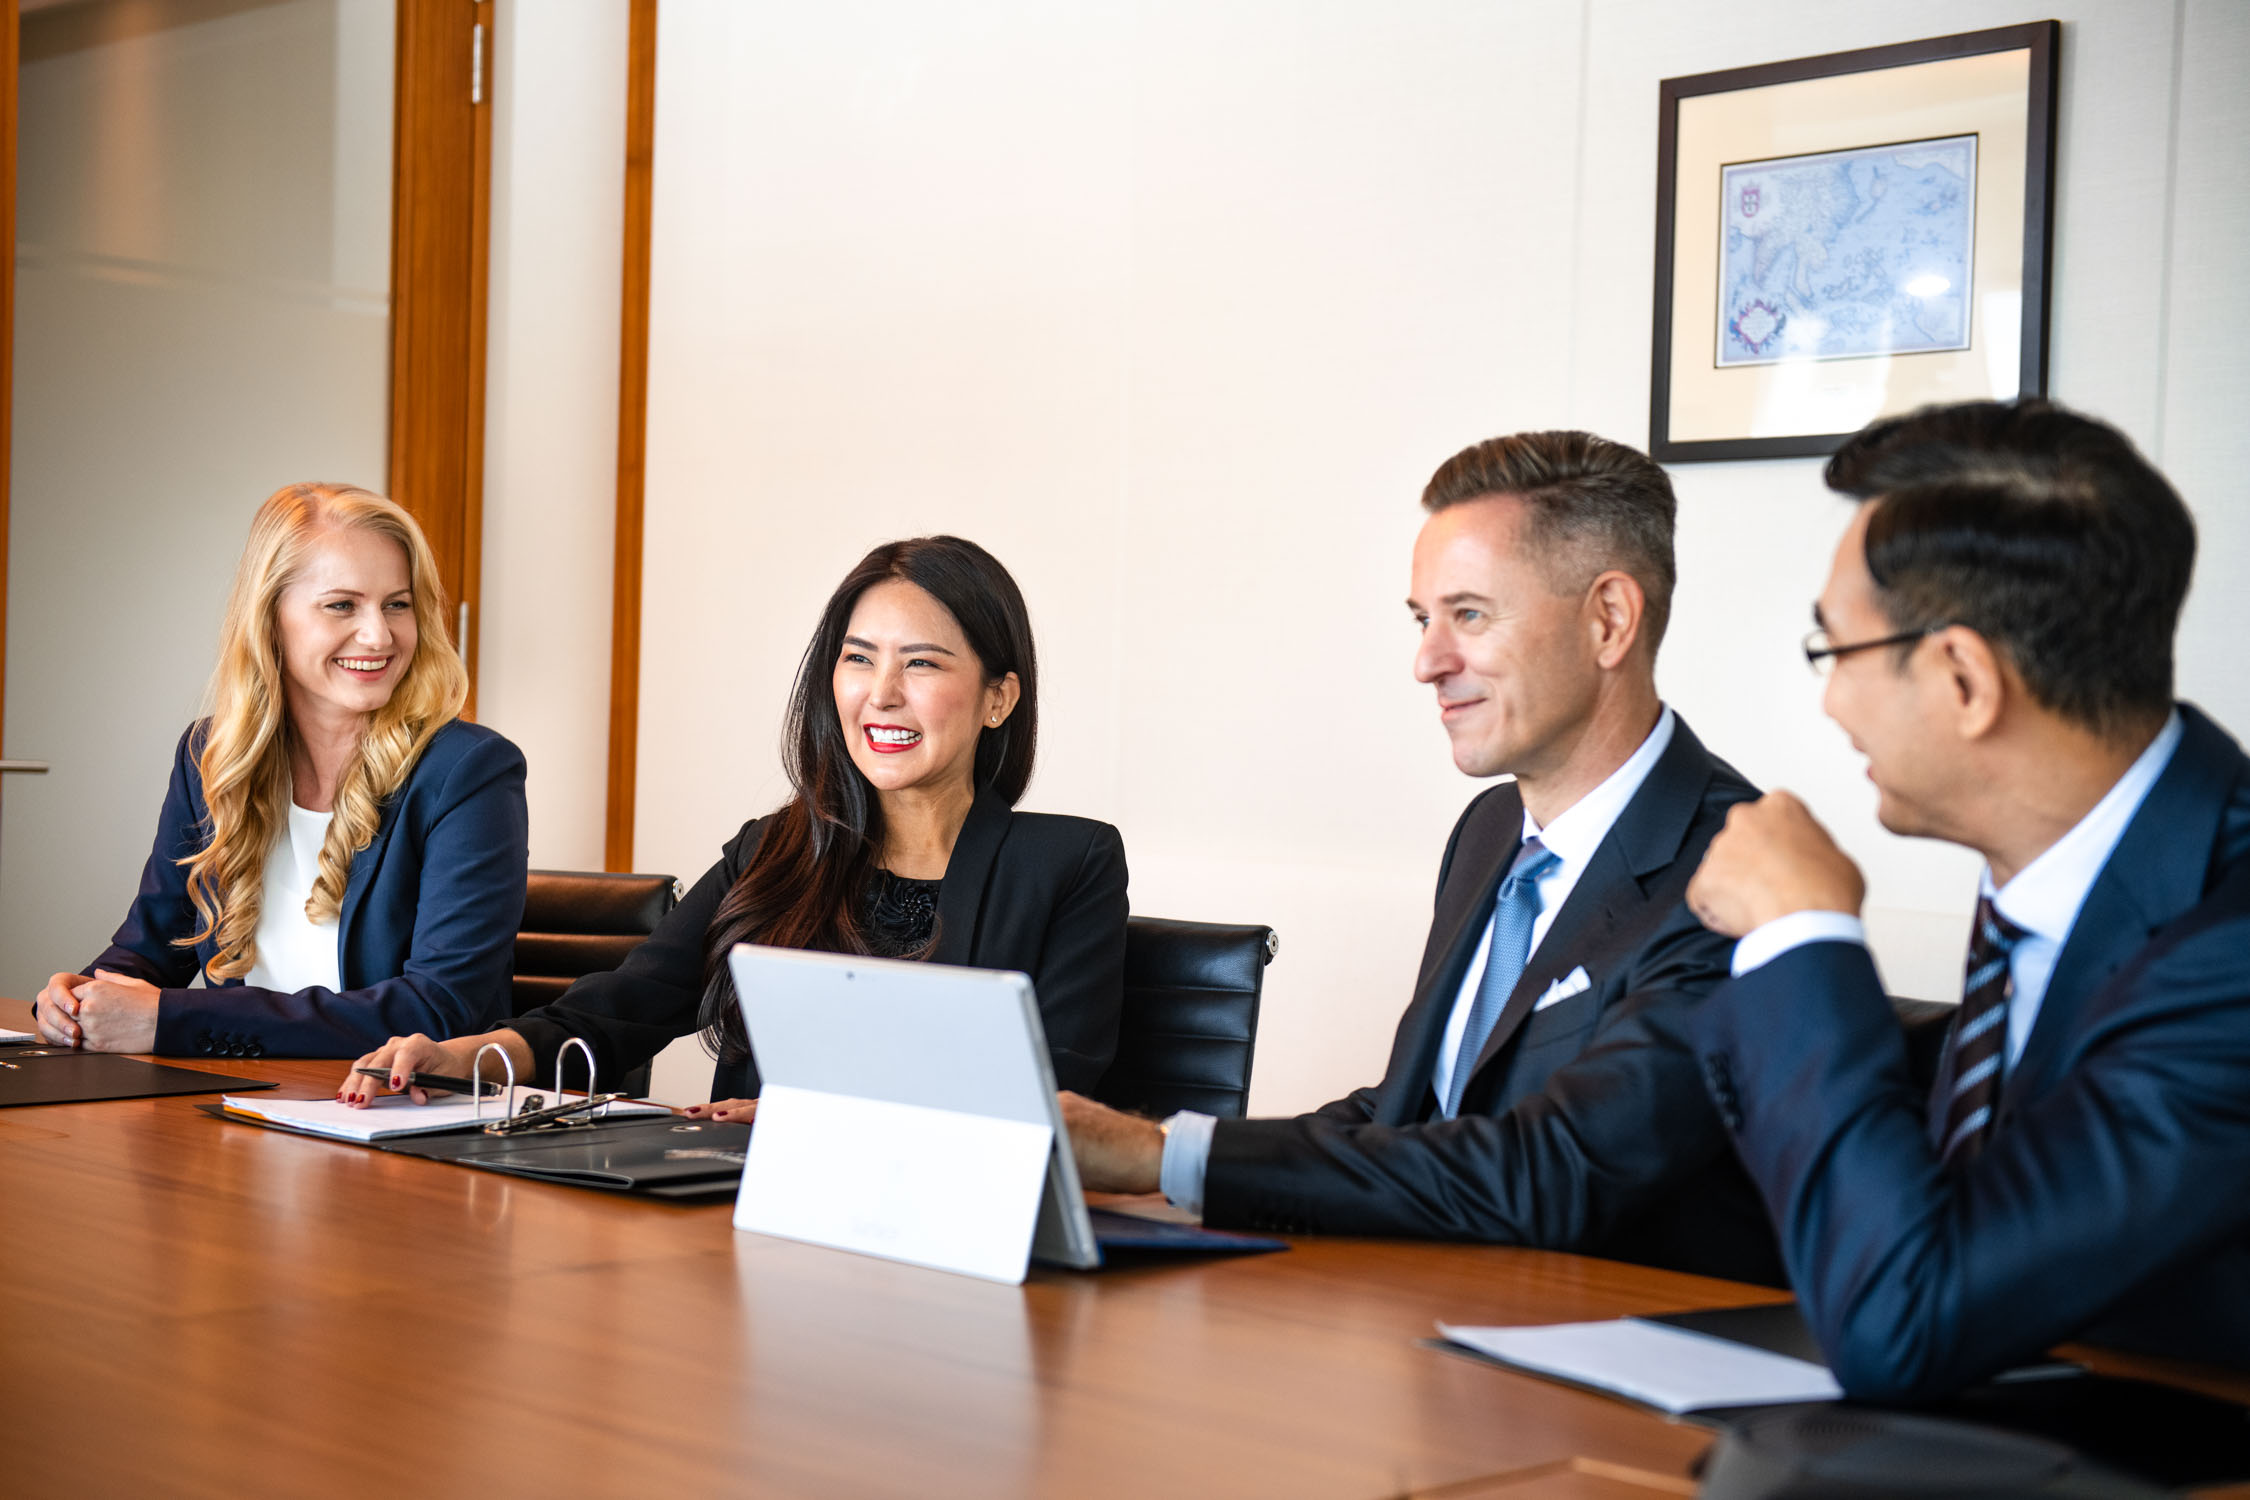 A group of corporate professionals (two women and two men) sitting down having a meeting in the office